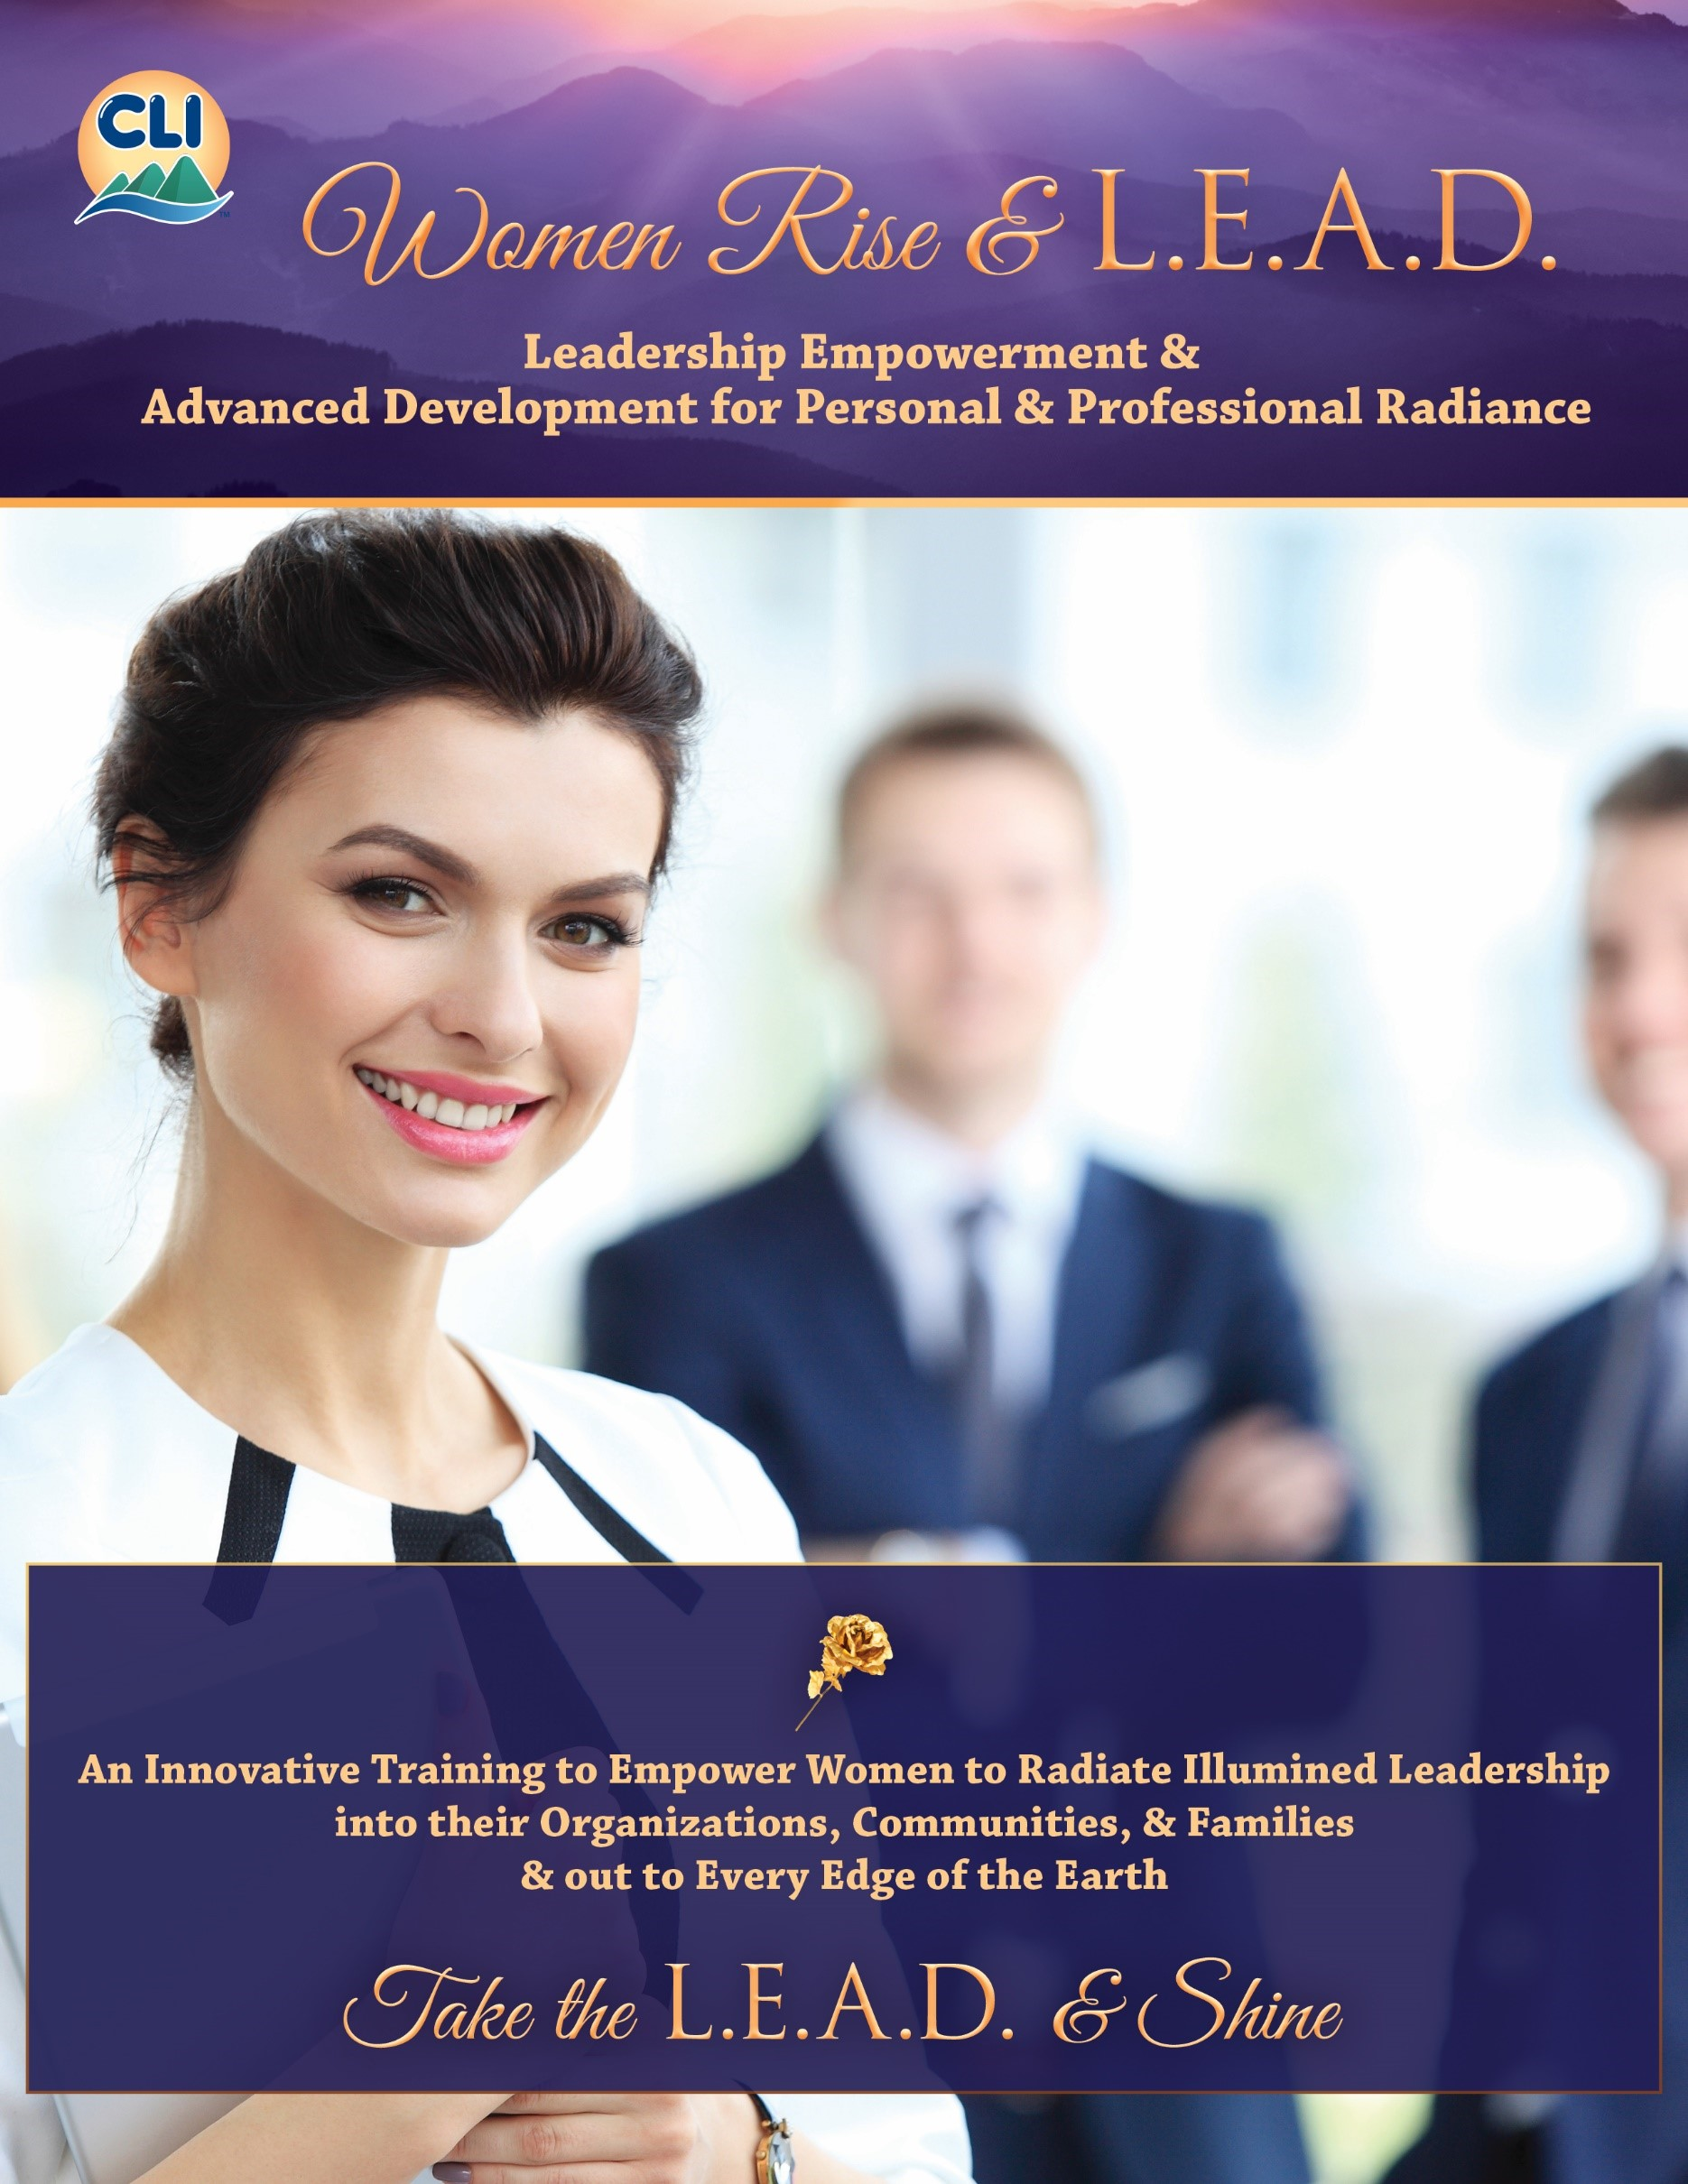 Download Brochure - Women Rise & L.E.A.D. for relationship building, communication, conflict resolution and self-esteem